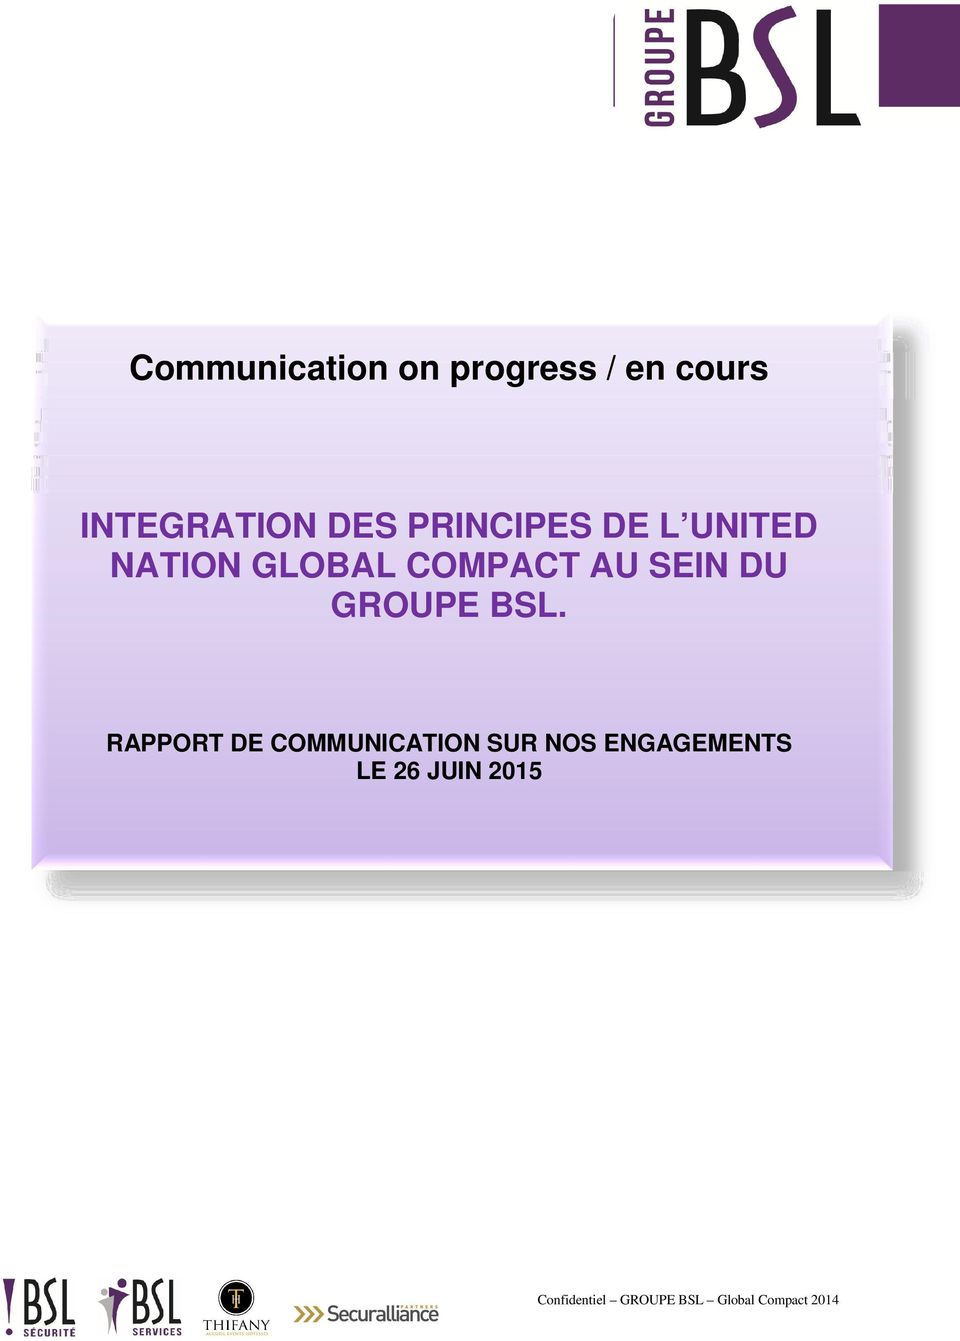 GLOBAL COMPACT AU SEIN DU GROUPE BSL.